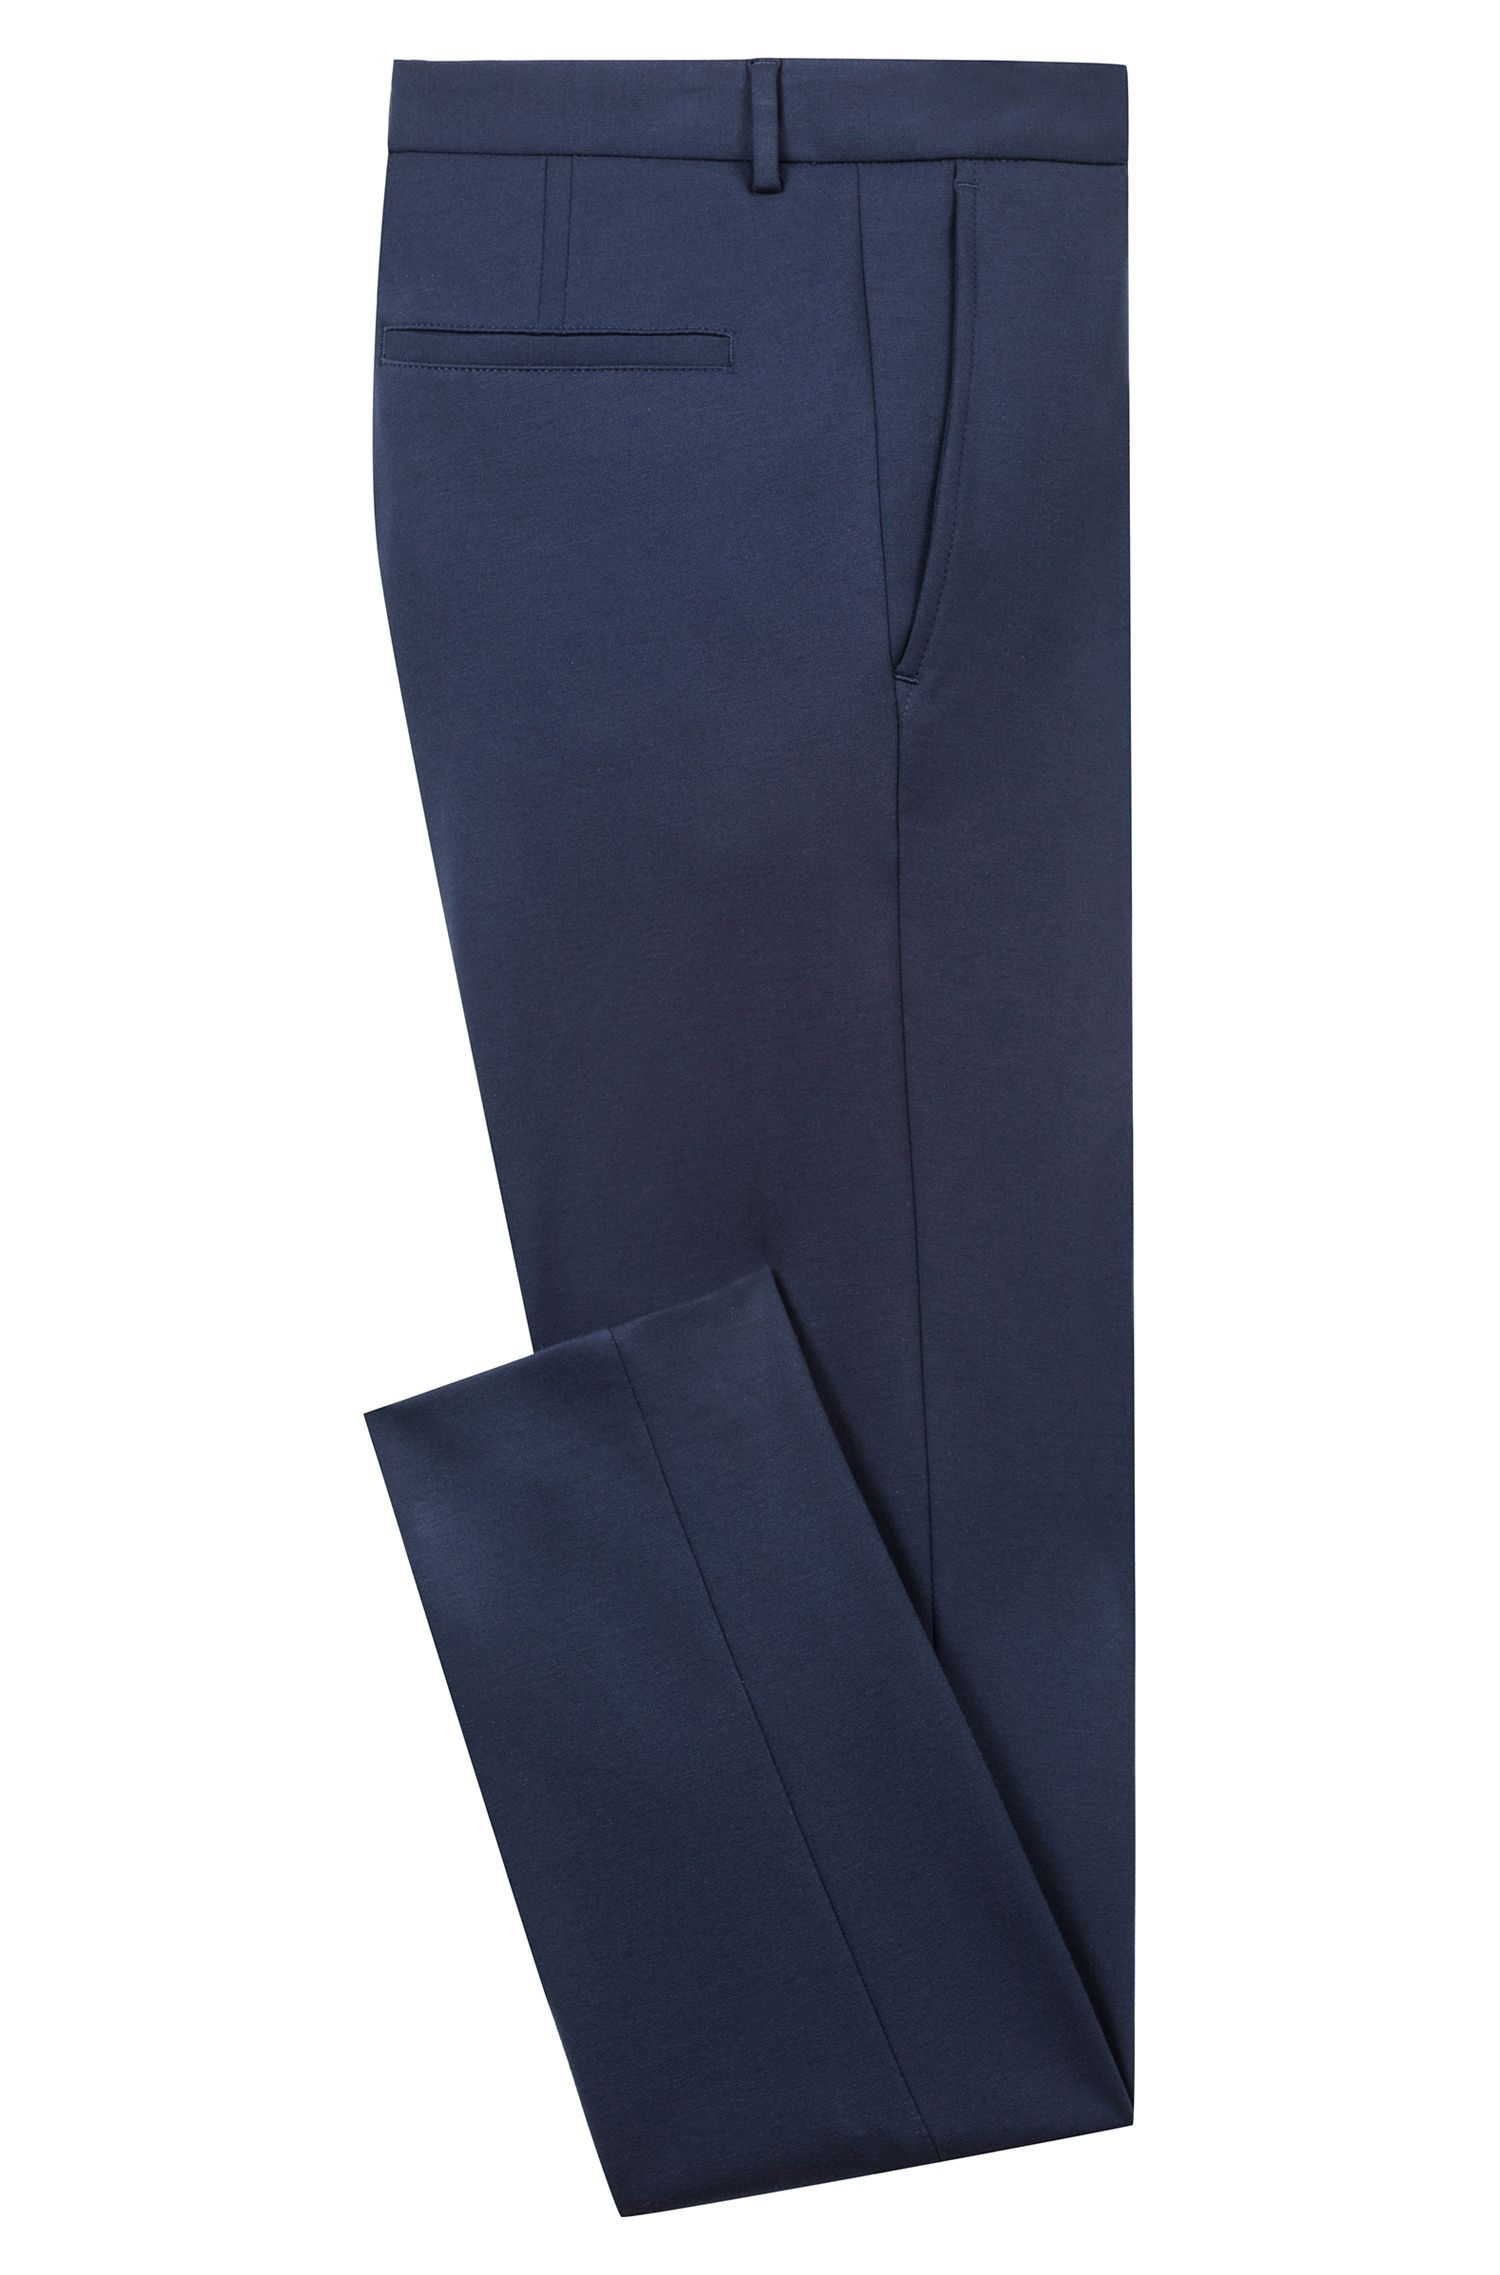 Pantalon Extra Slim Fit en jersey stretch de la collection capsule Bits & Bytes, Bleu foncé